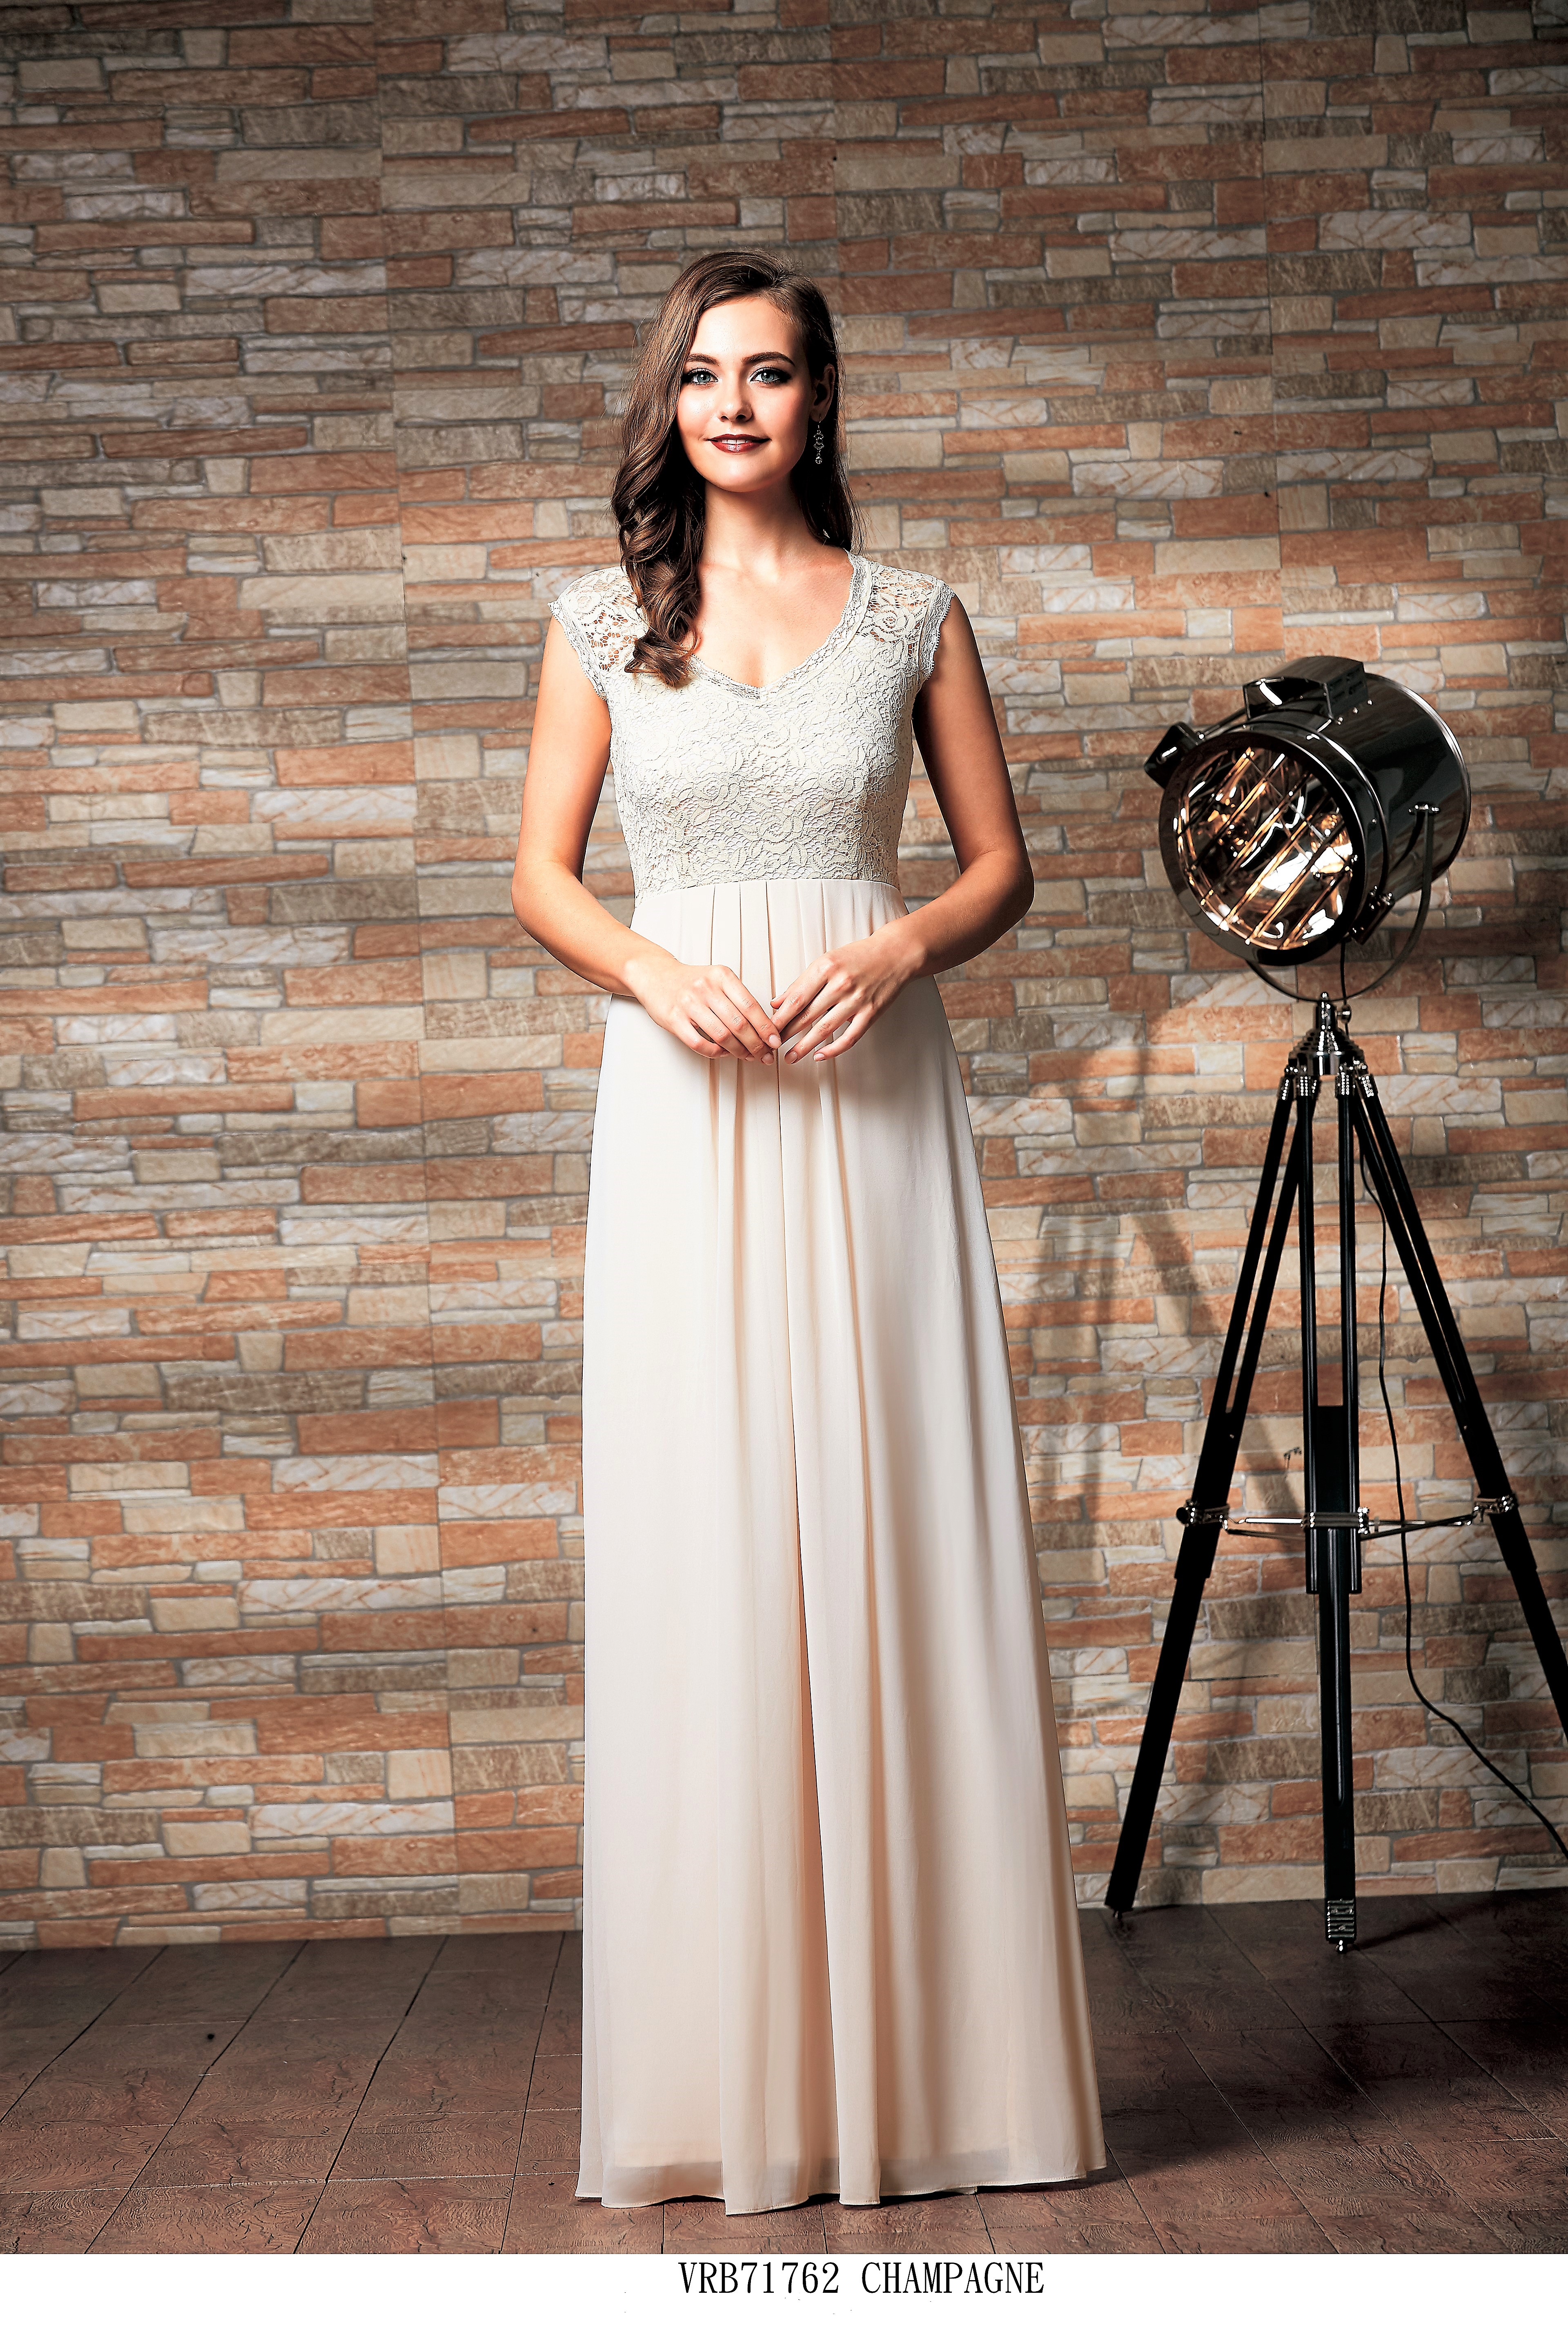 Vienna Lace and chiffon bridesmaid dress